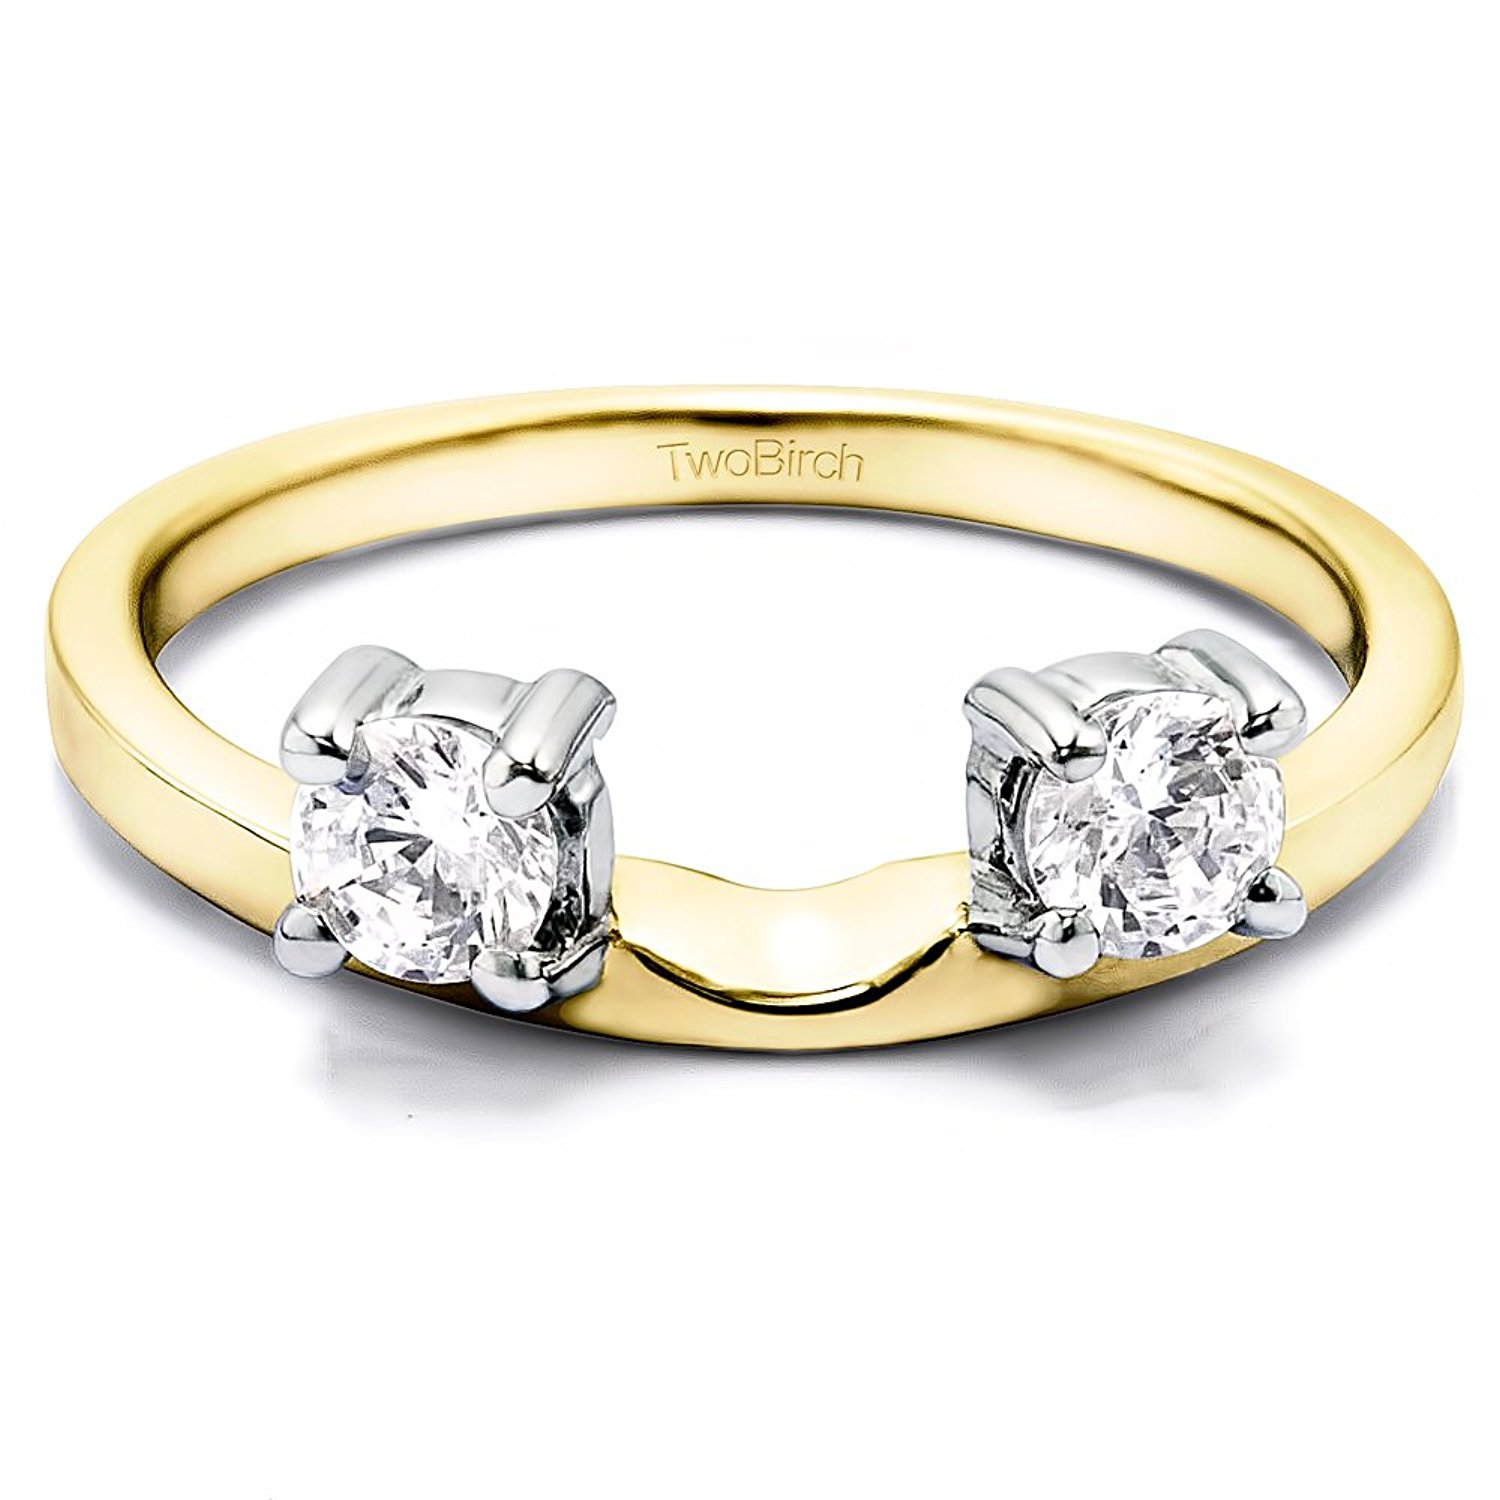 Rose Gold Plated Silver Wedding Band Black Cubic Zirconia Size 3 to 15 in 1//4 Size Intervals 0.42Ct